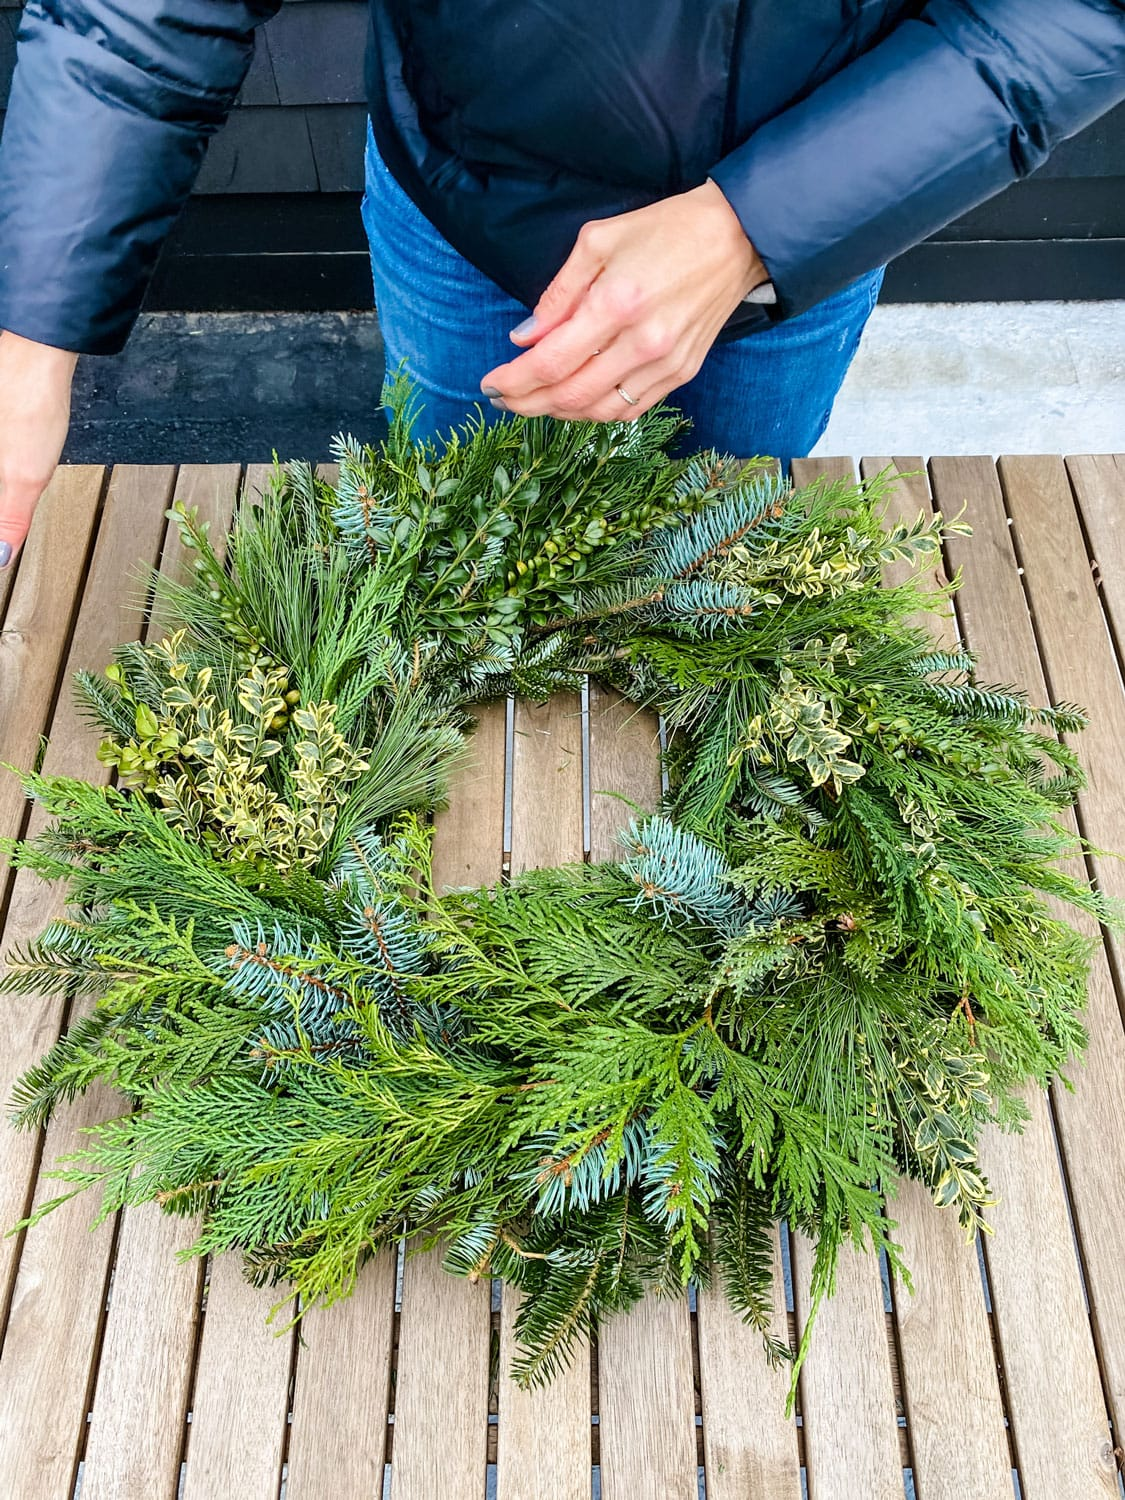 wreath on outdoor rustic table